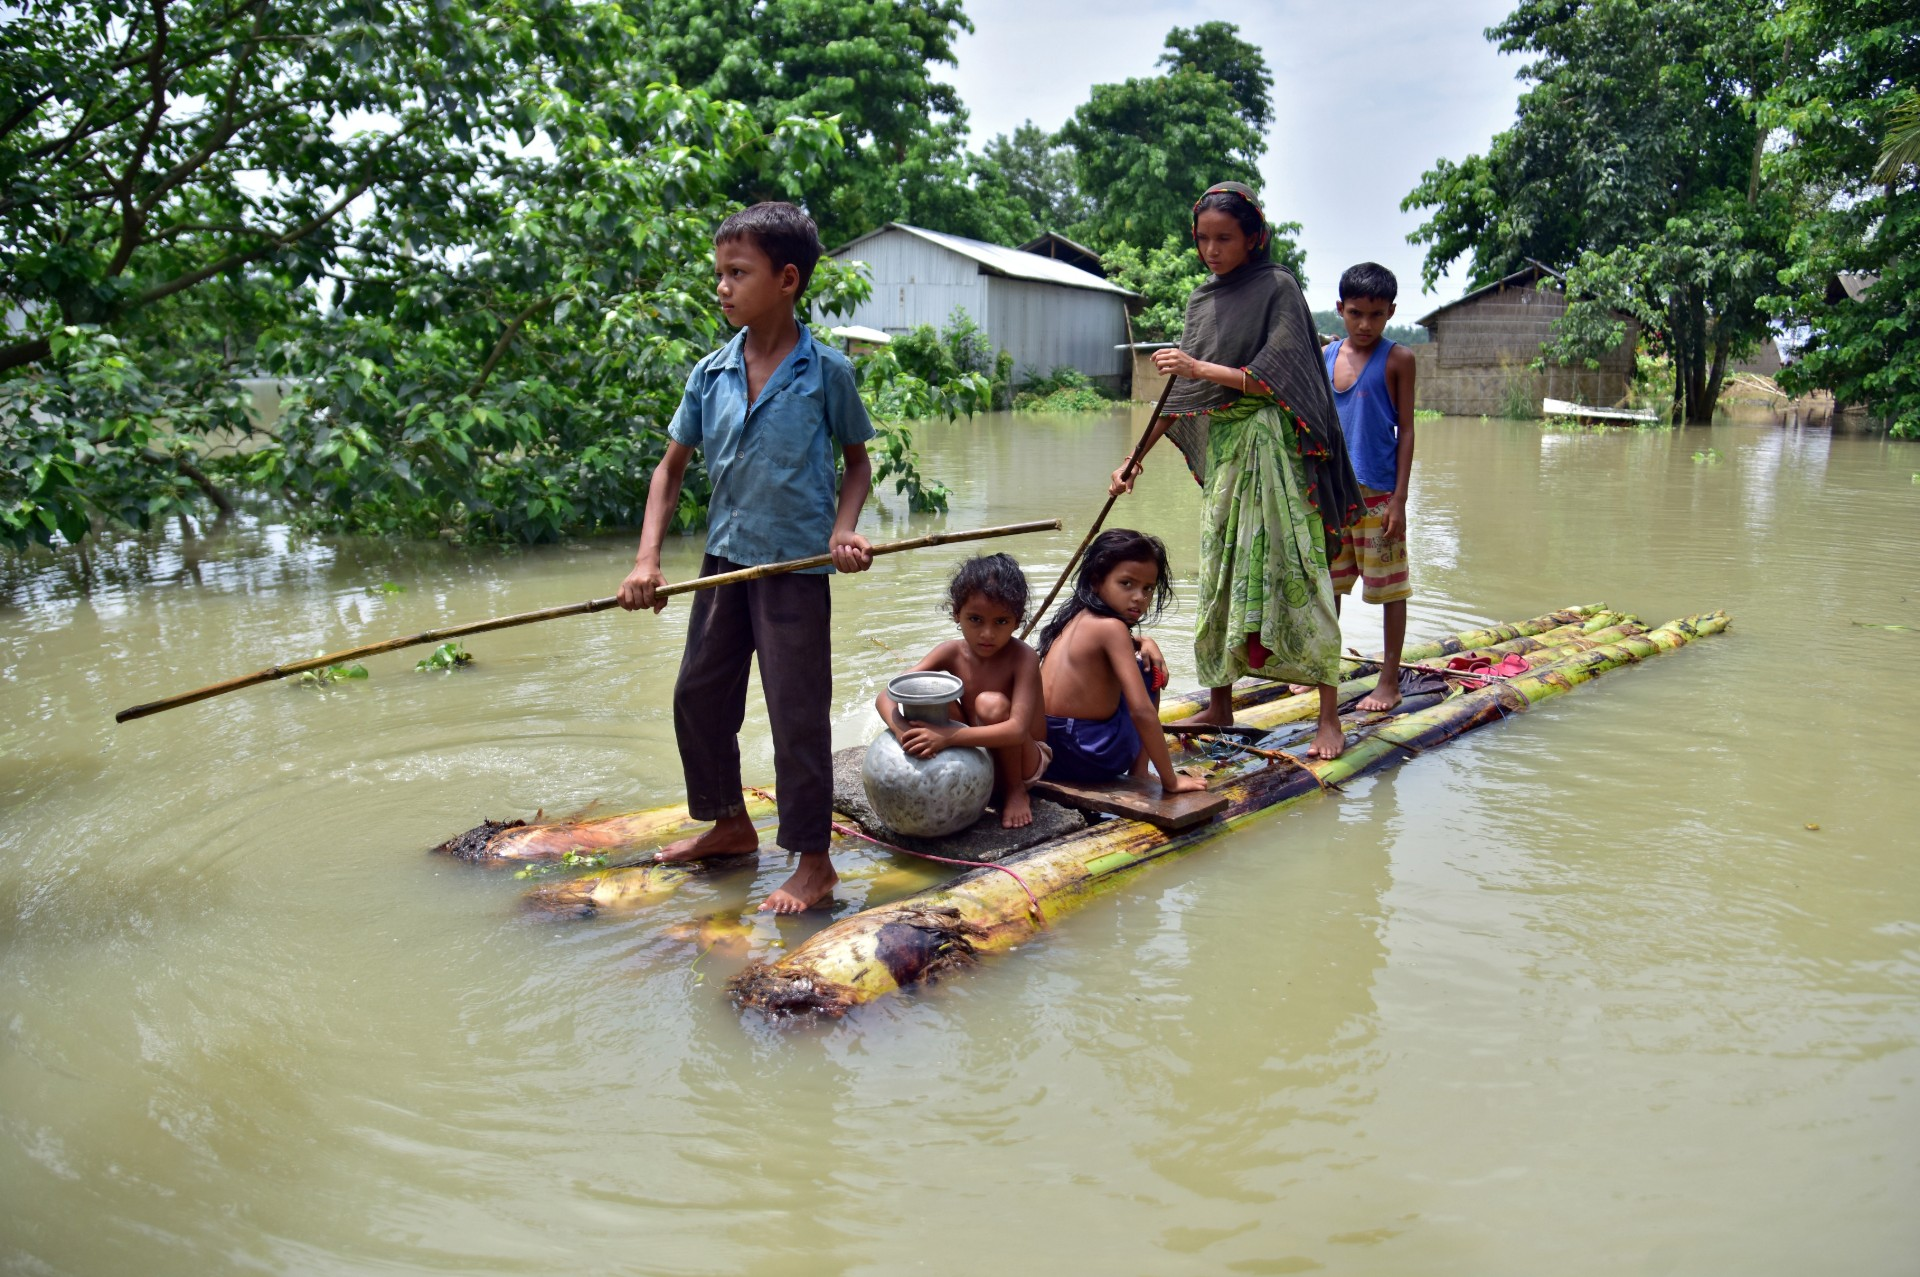 Villagers row a makeshift raft through a flooded field to reach a safer place at the flood-affected Mayong village in Morigaon district, in the northeastern state of Assam, India, June 29, 2020. REUTERS/Anuwar Hazarika